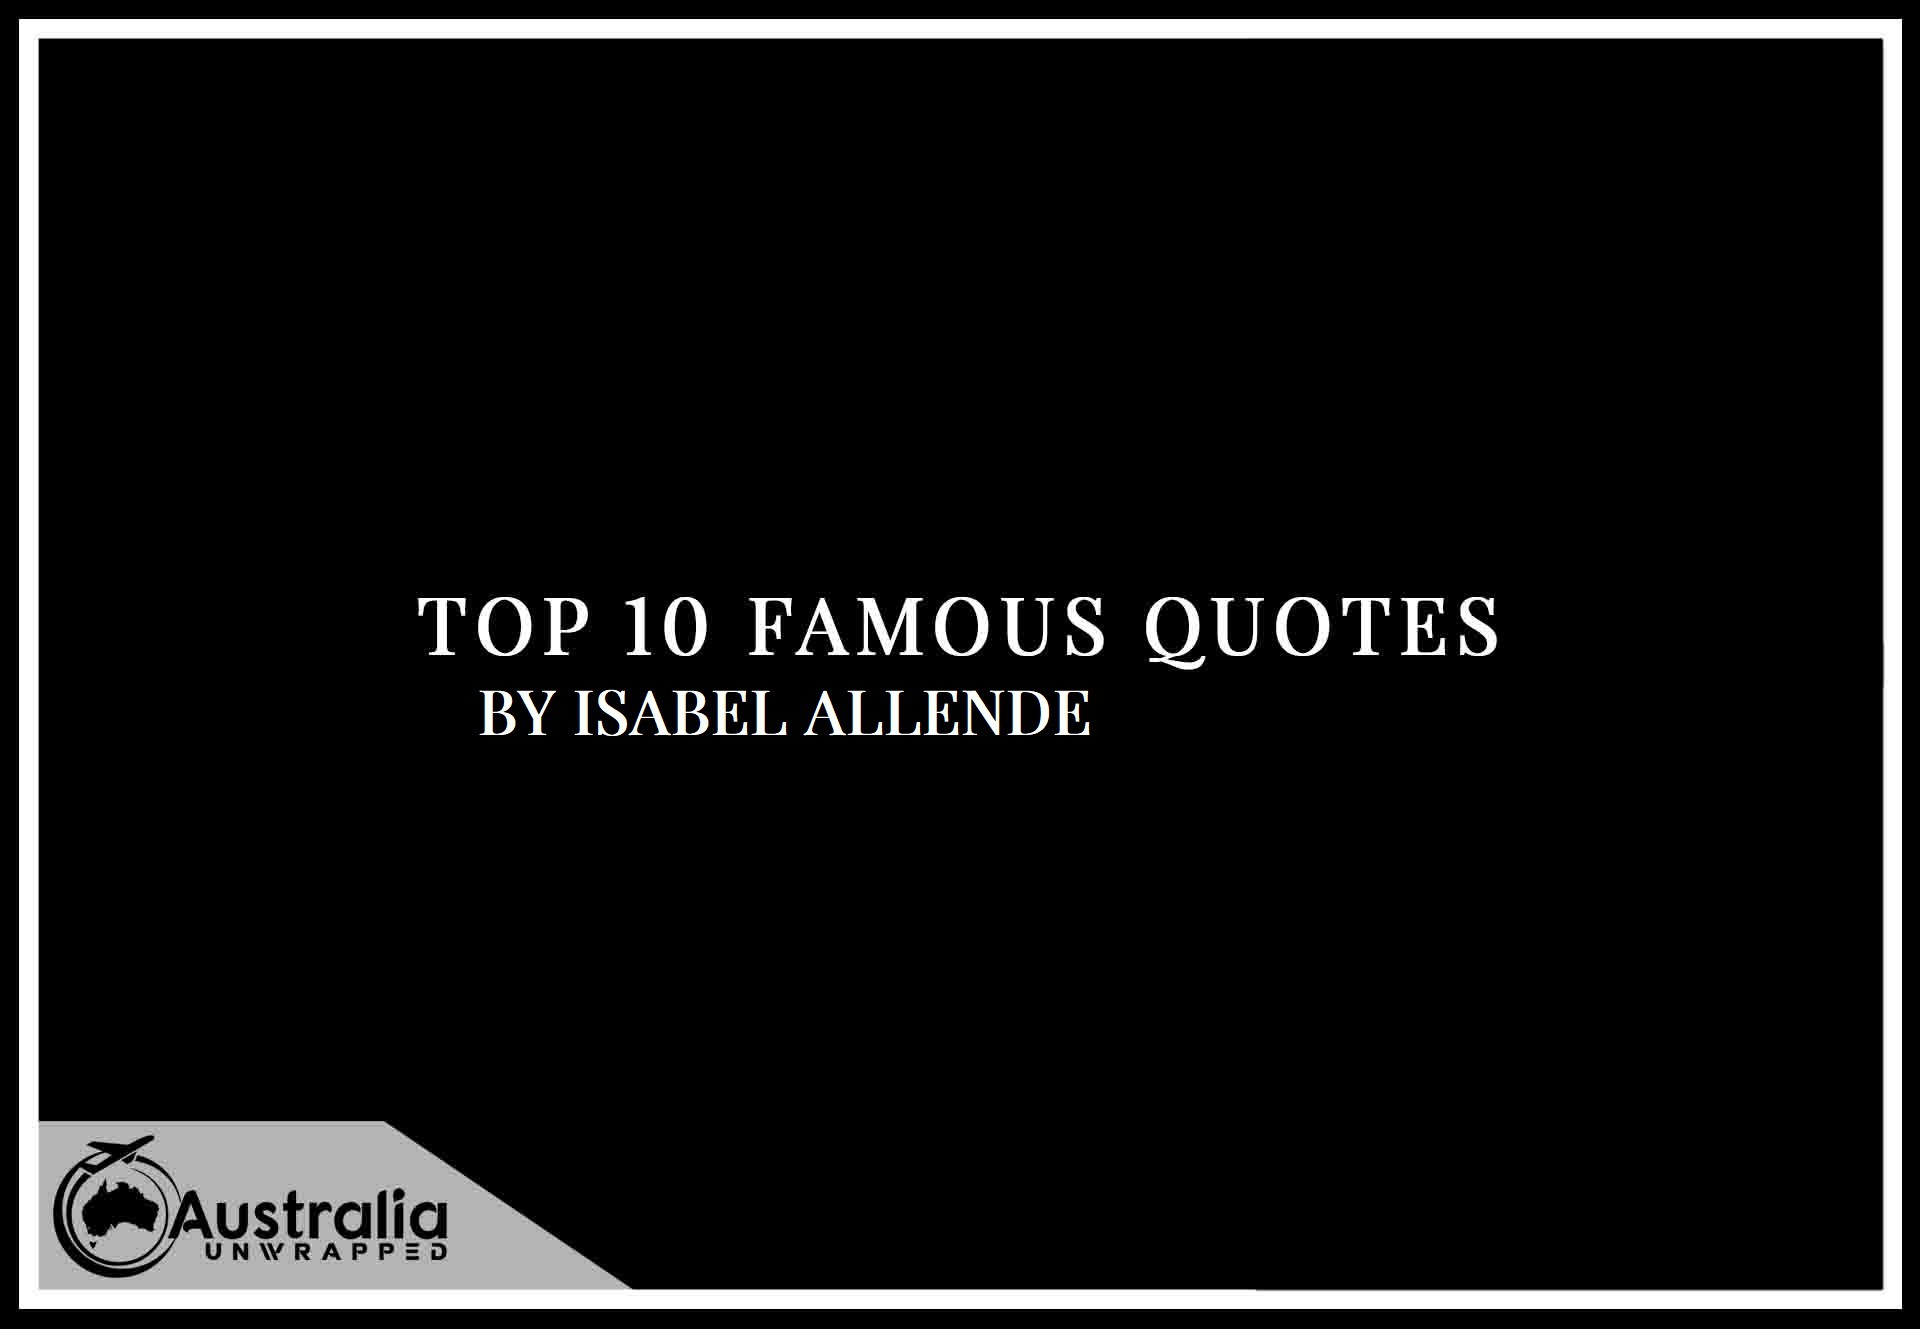 Top 10 Famous Quotes by Author Isabel Allende